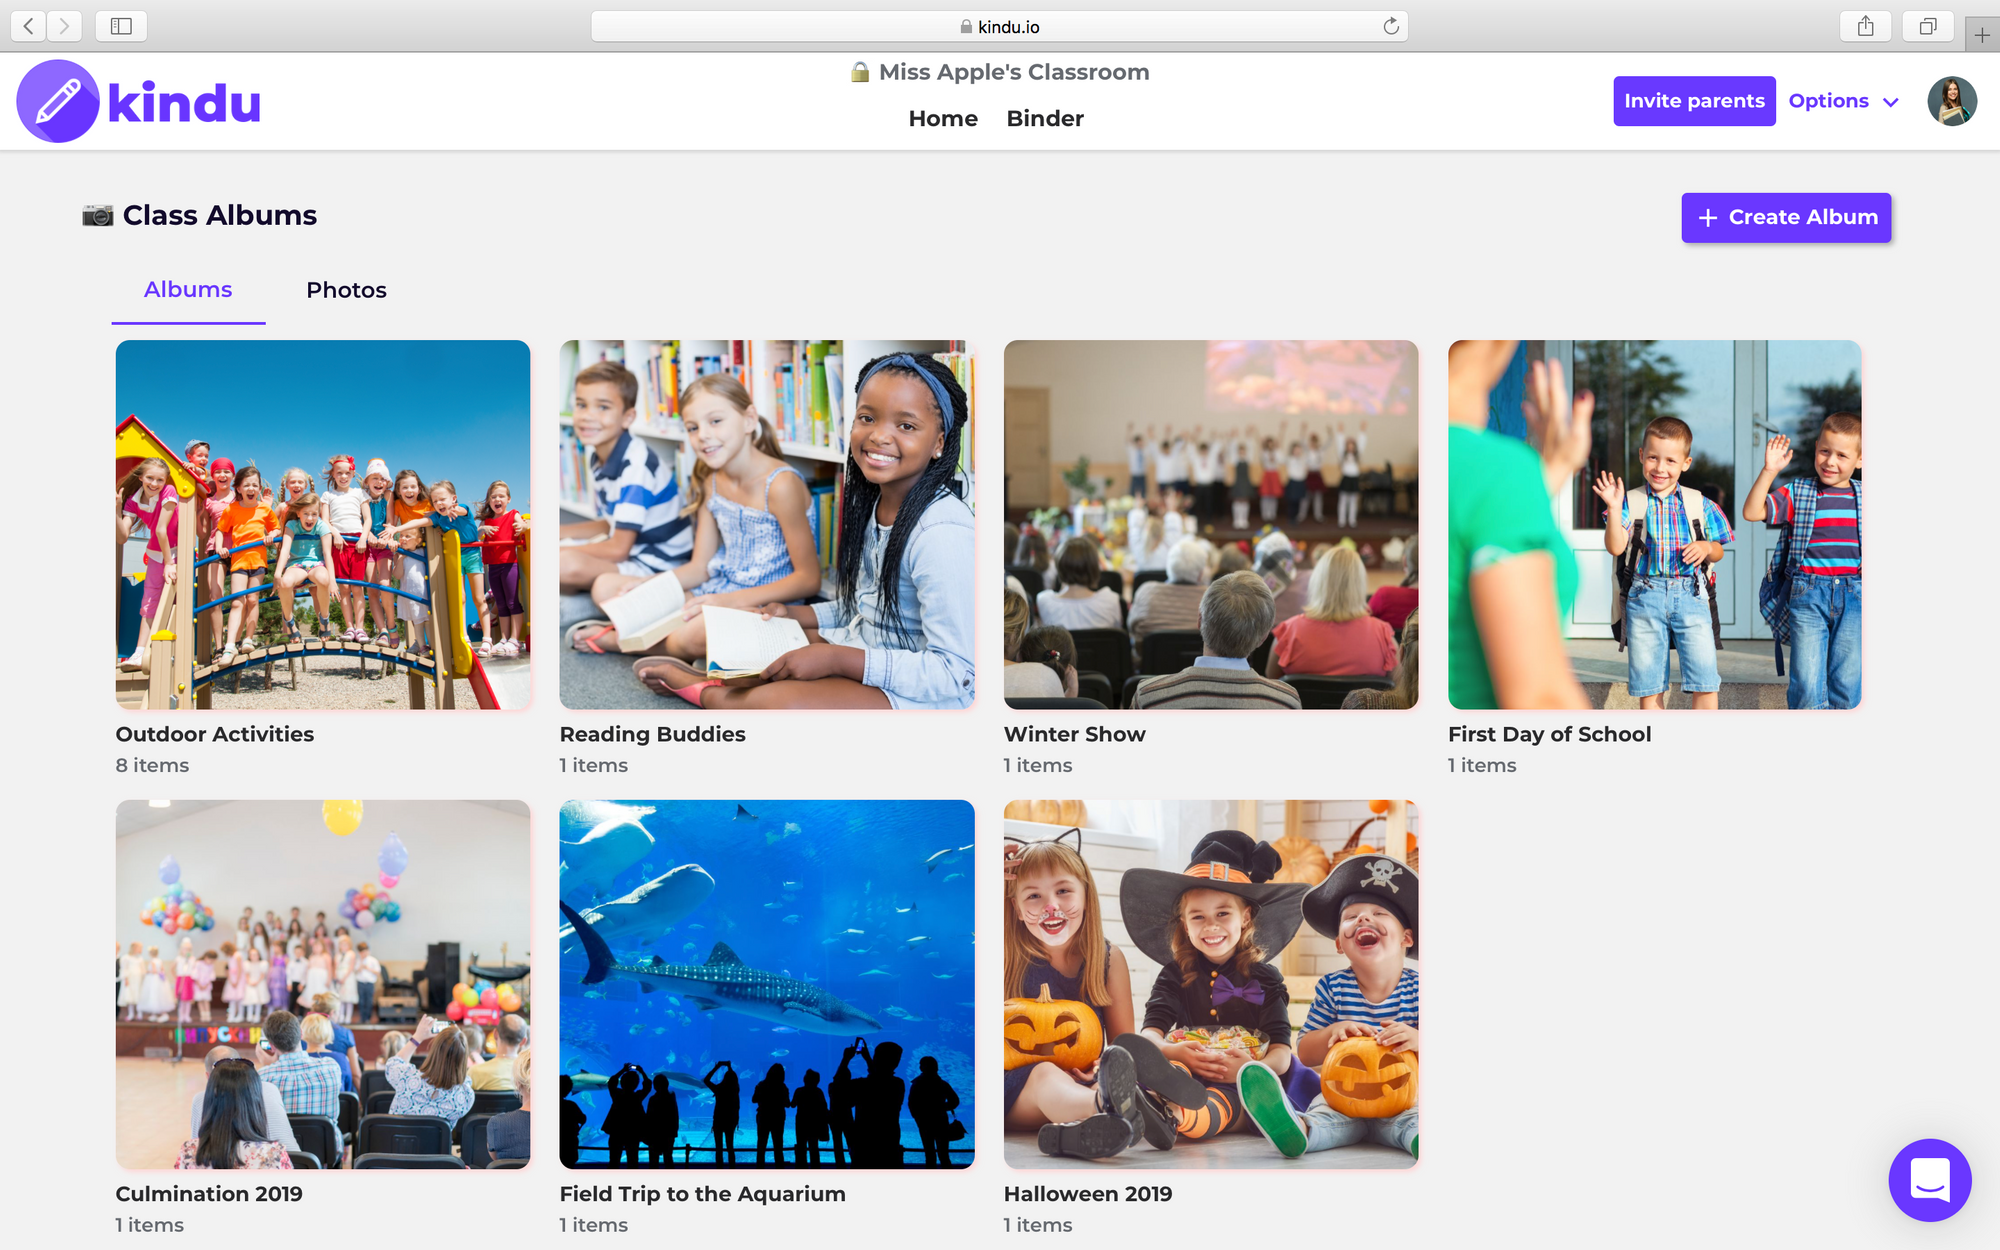 Share class photos and create albums or allow parents to upload their own albums.